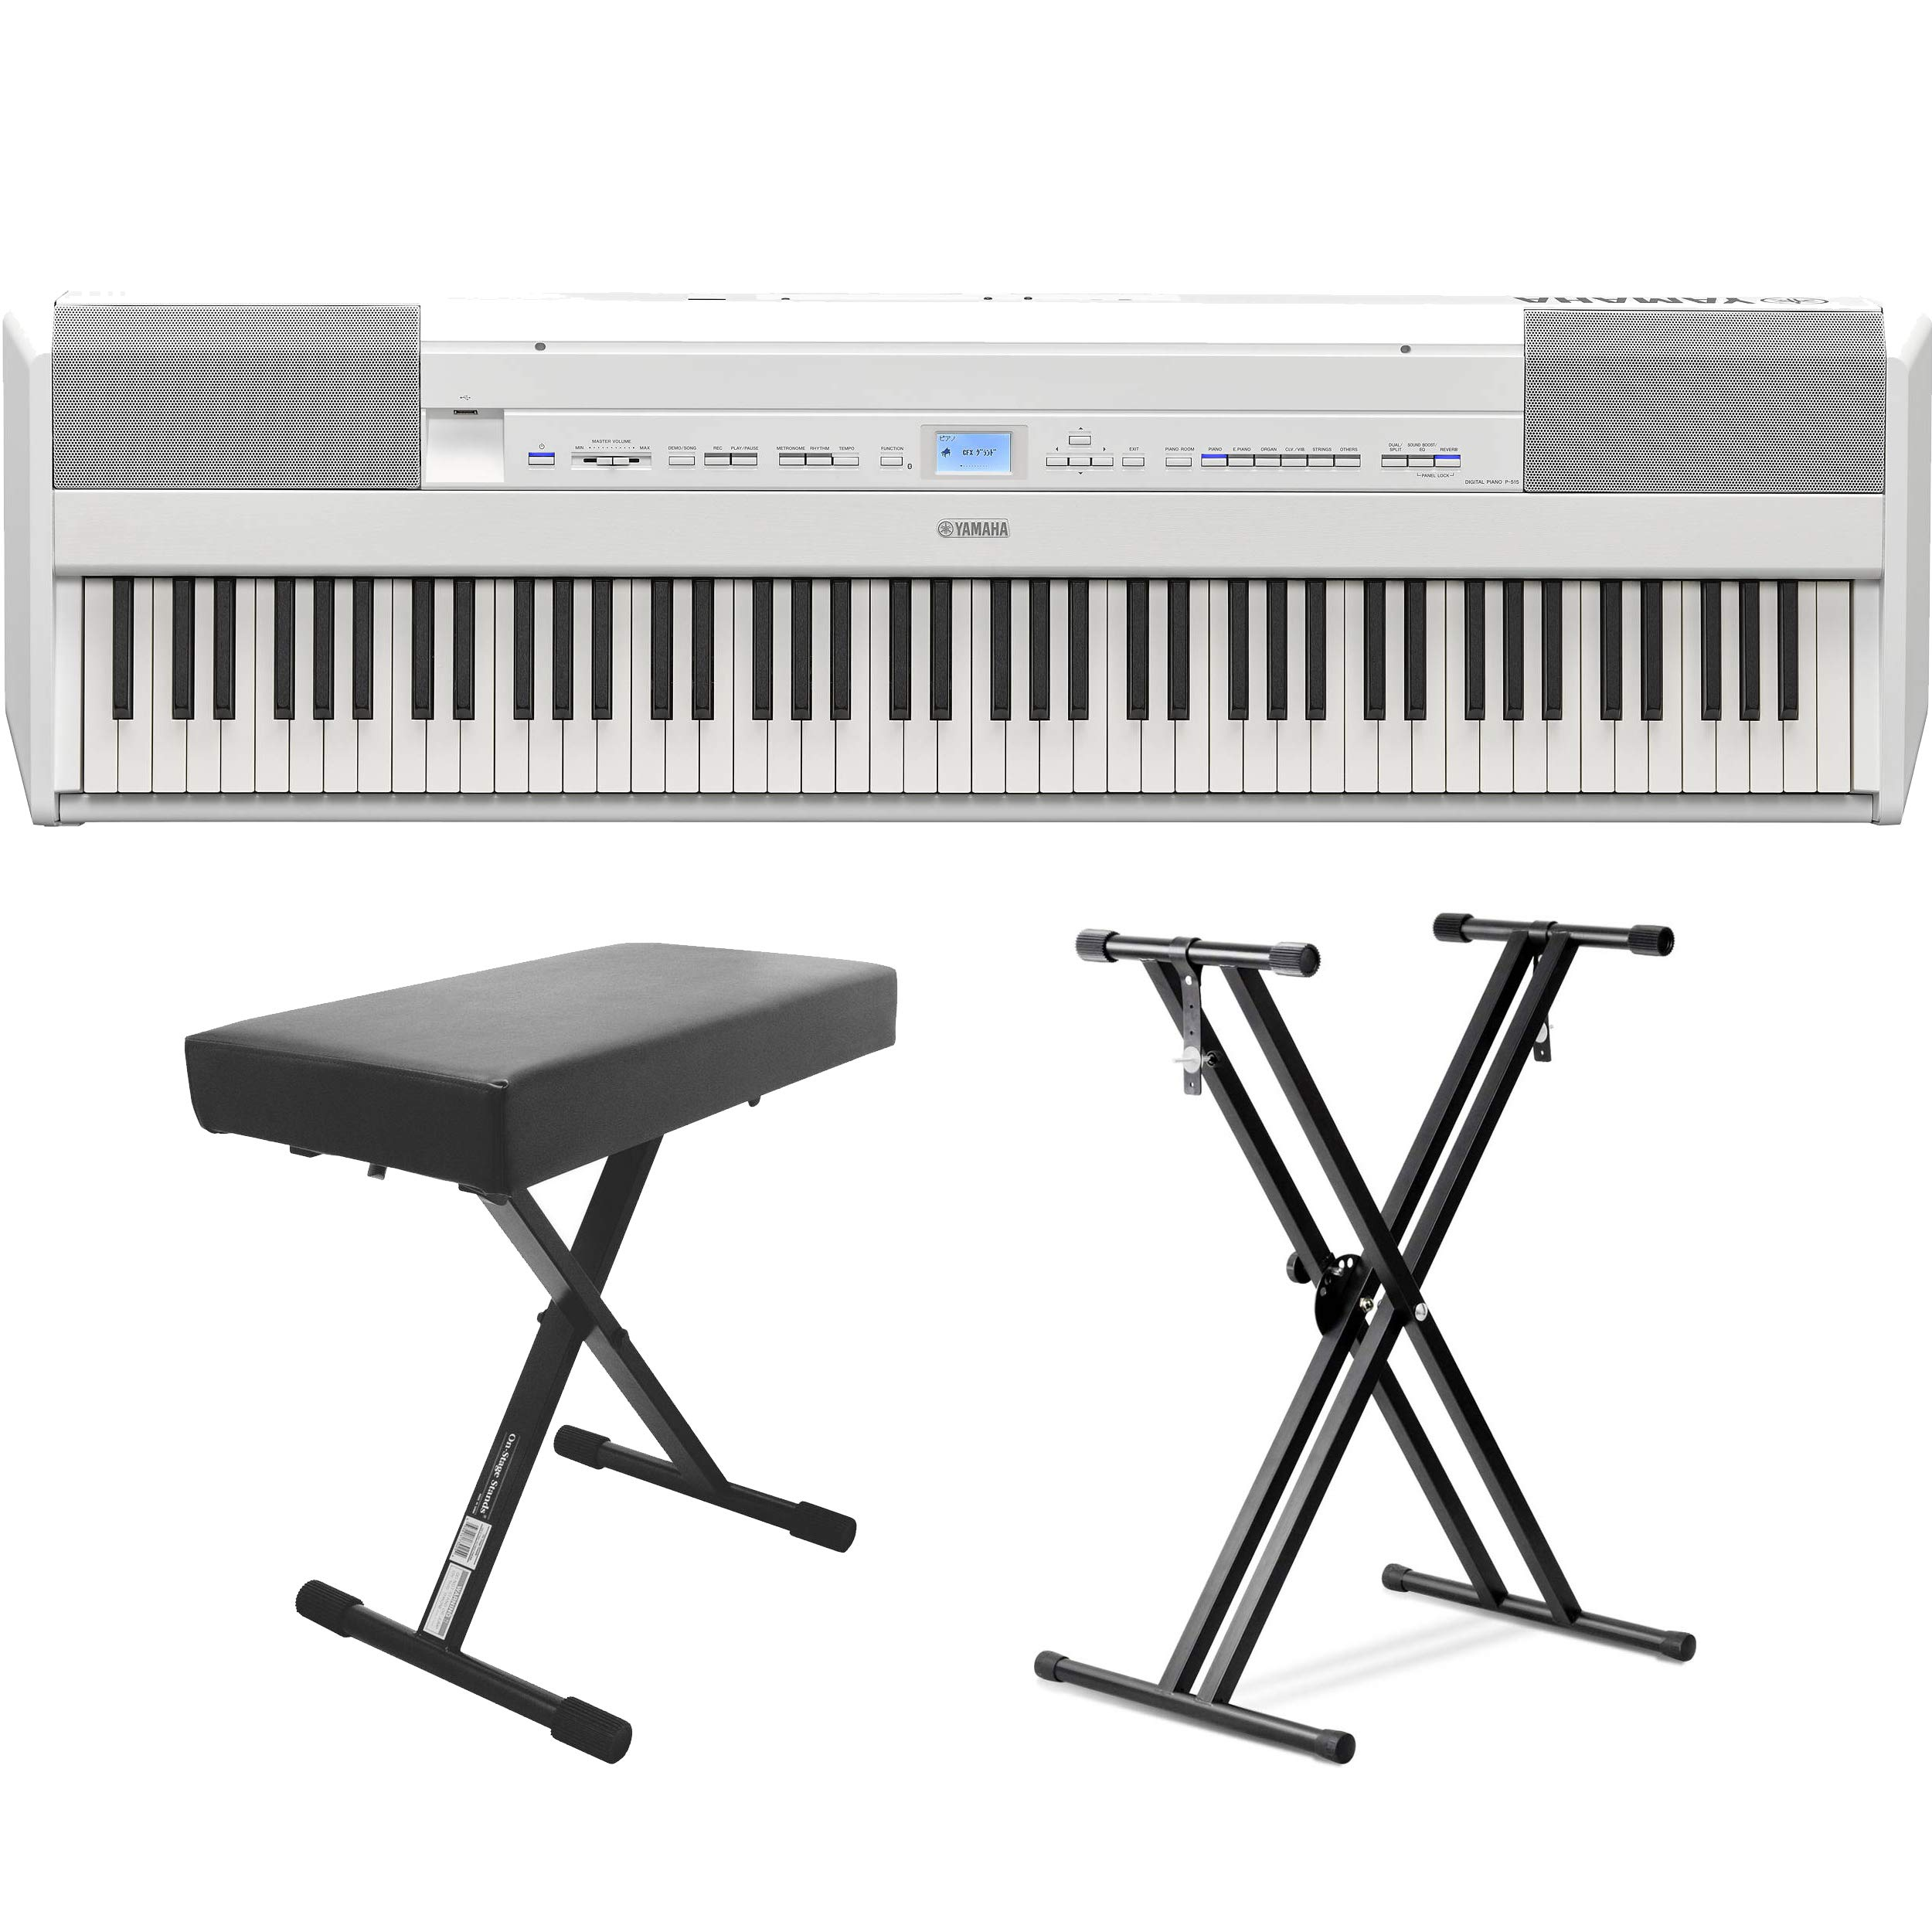 Yamaha P-515 88-Key Portable Digital Piano (White) (with double braced stand and bench) by YamahaBundle